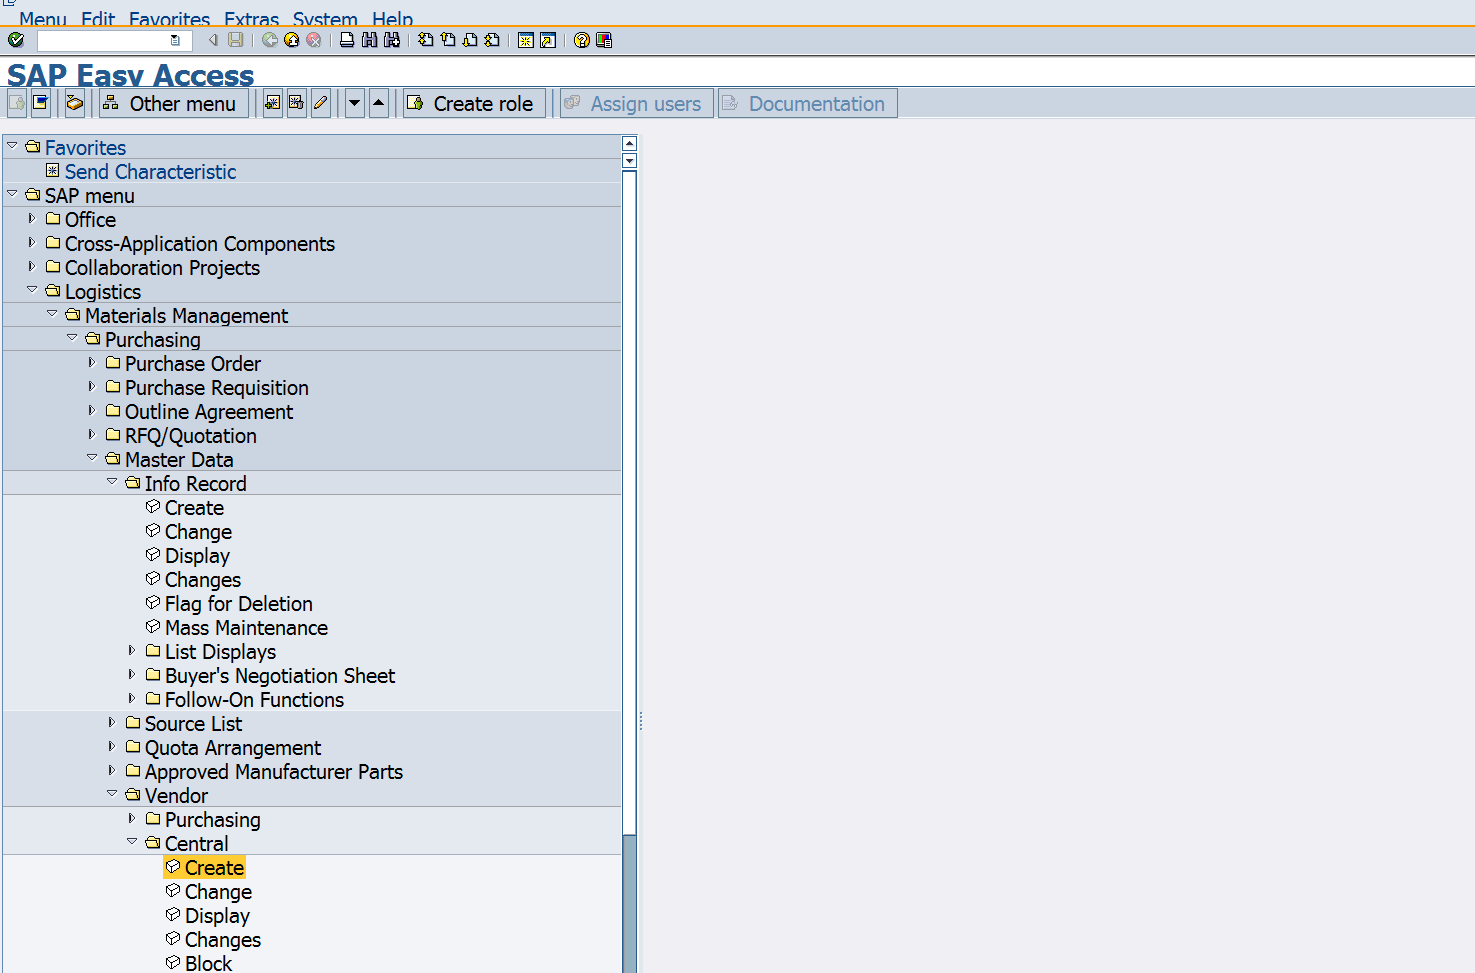 How to set up Intercompany Process in SAP